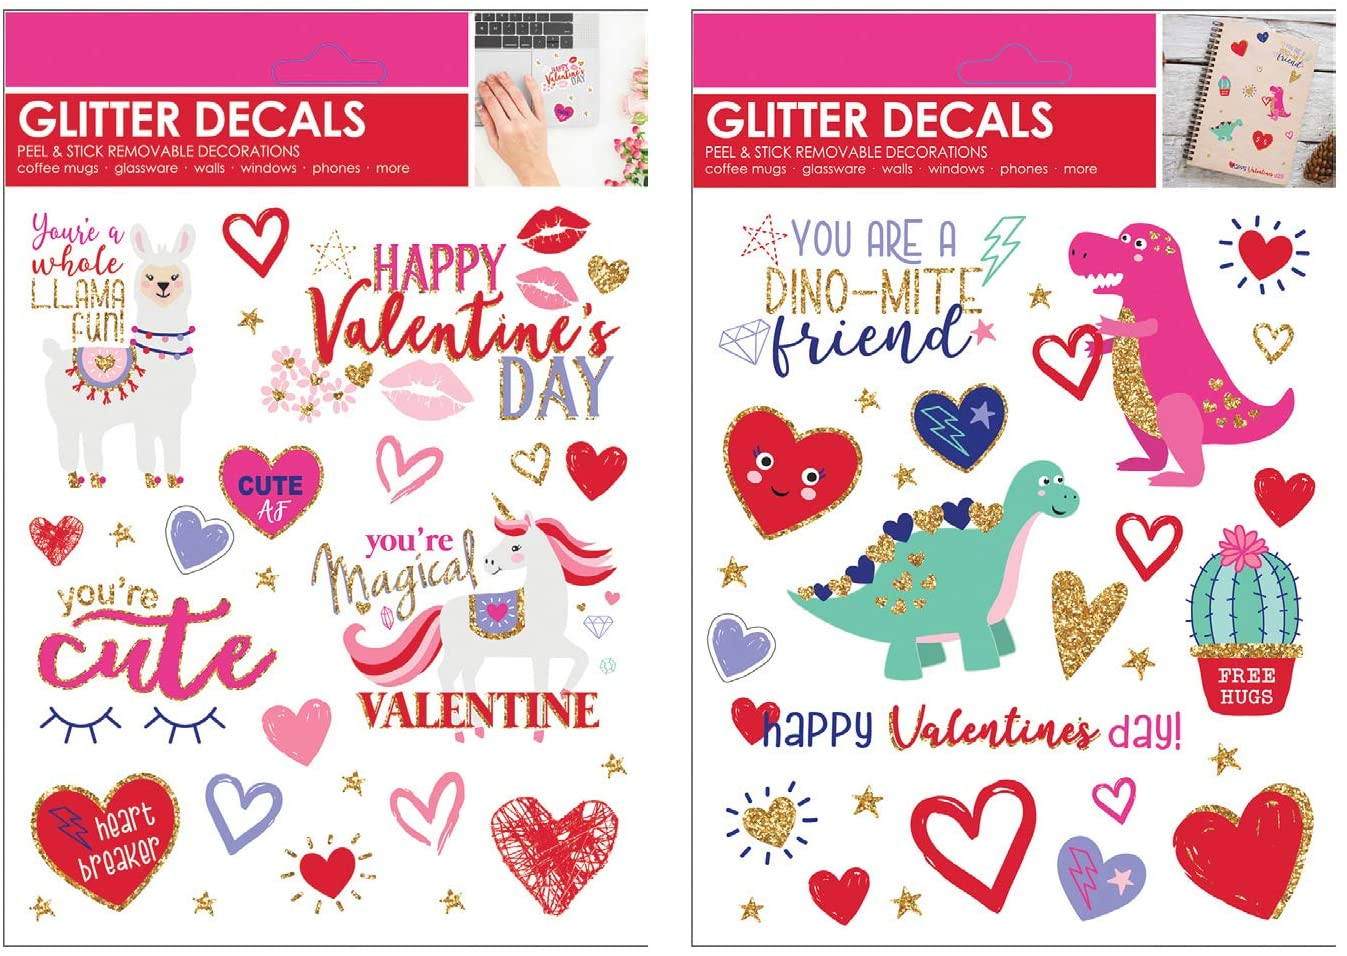 B-THERE Bundle of Valentine's Day Glitter Decals for Books, Cards, Windows, Glass with Llama, Unicorn, Hearts, Dinosaurs